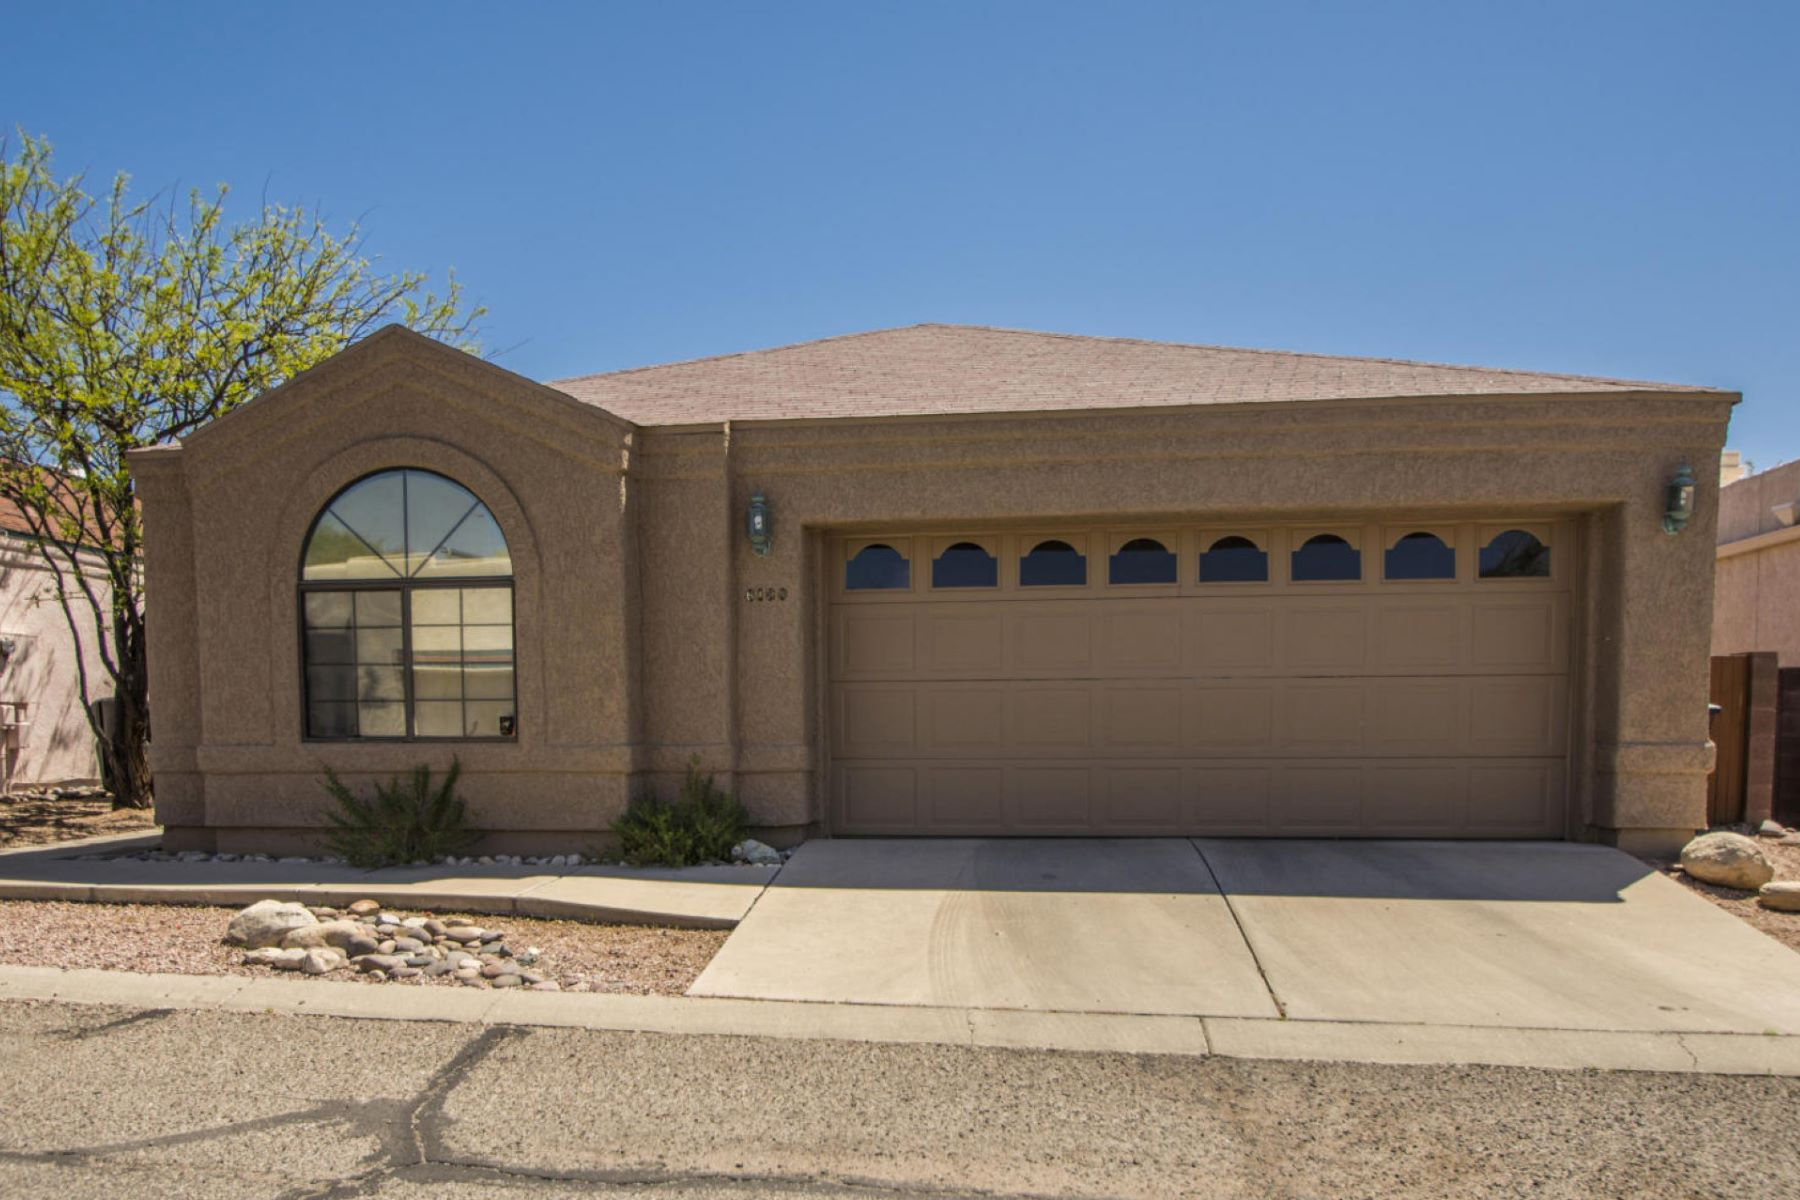 Single Family Home for Sale at Great Patio Home! 6100 N Reliance Drive Tucson, Arizona, 85704 United States